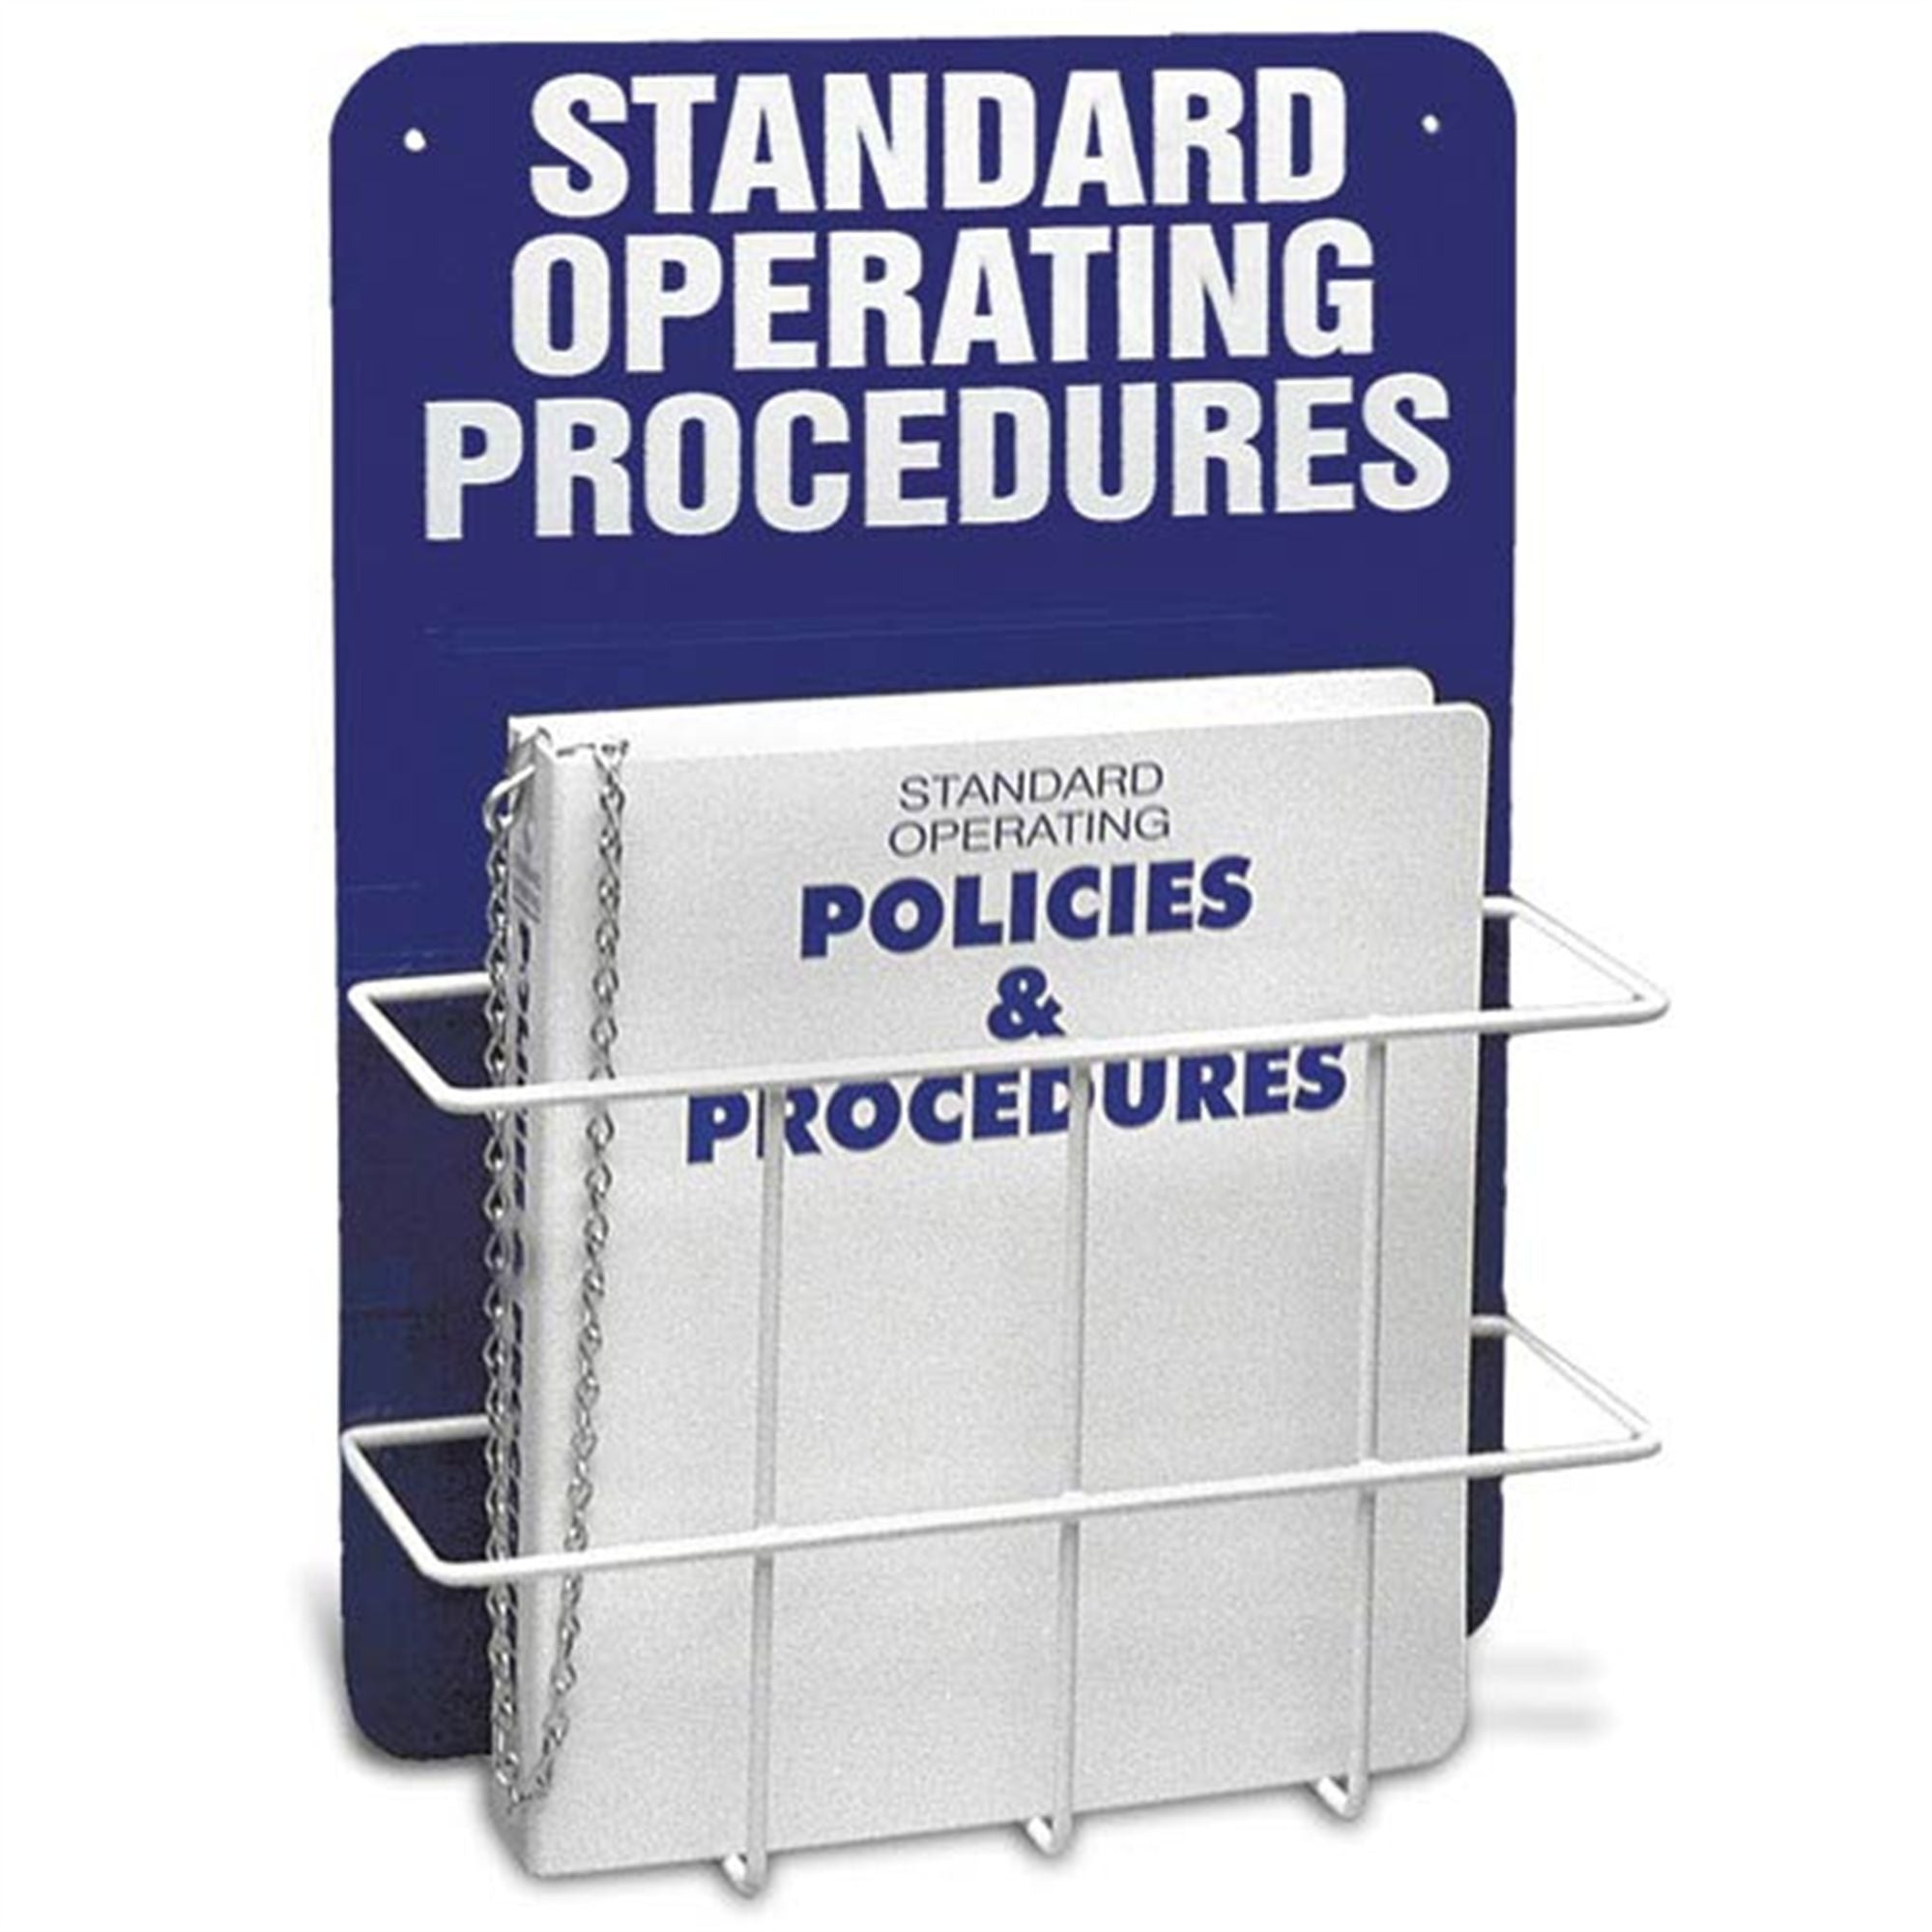 Standard Operating Procedures Binder and Holder with Wall-Mount Backboard, Single